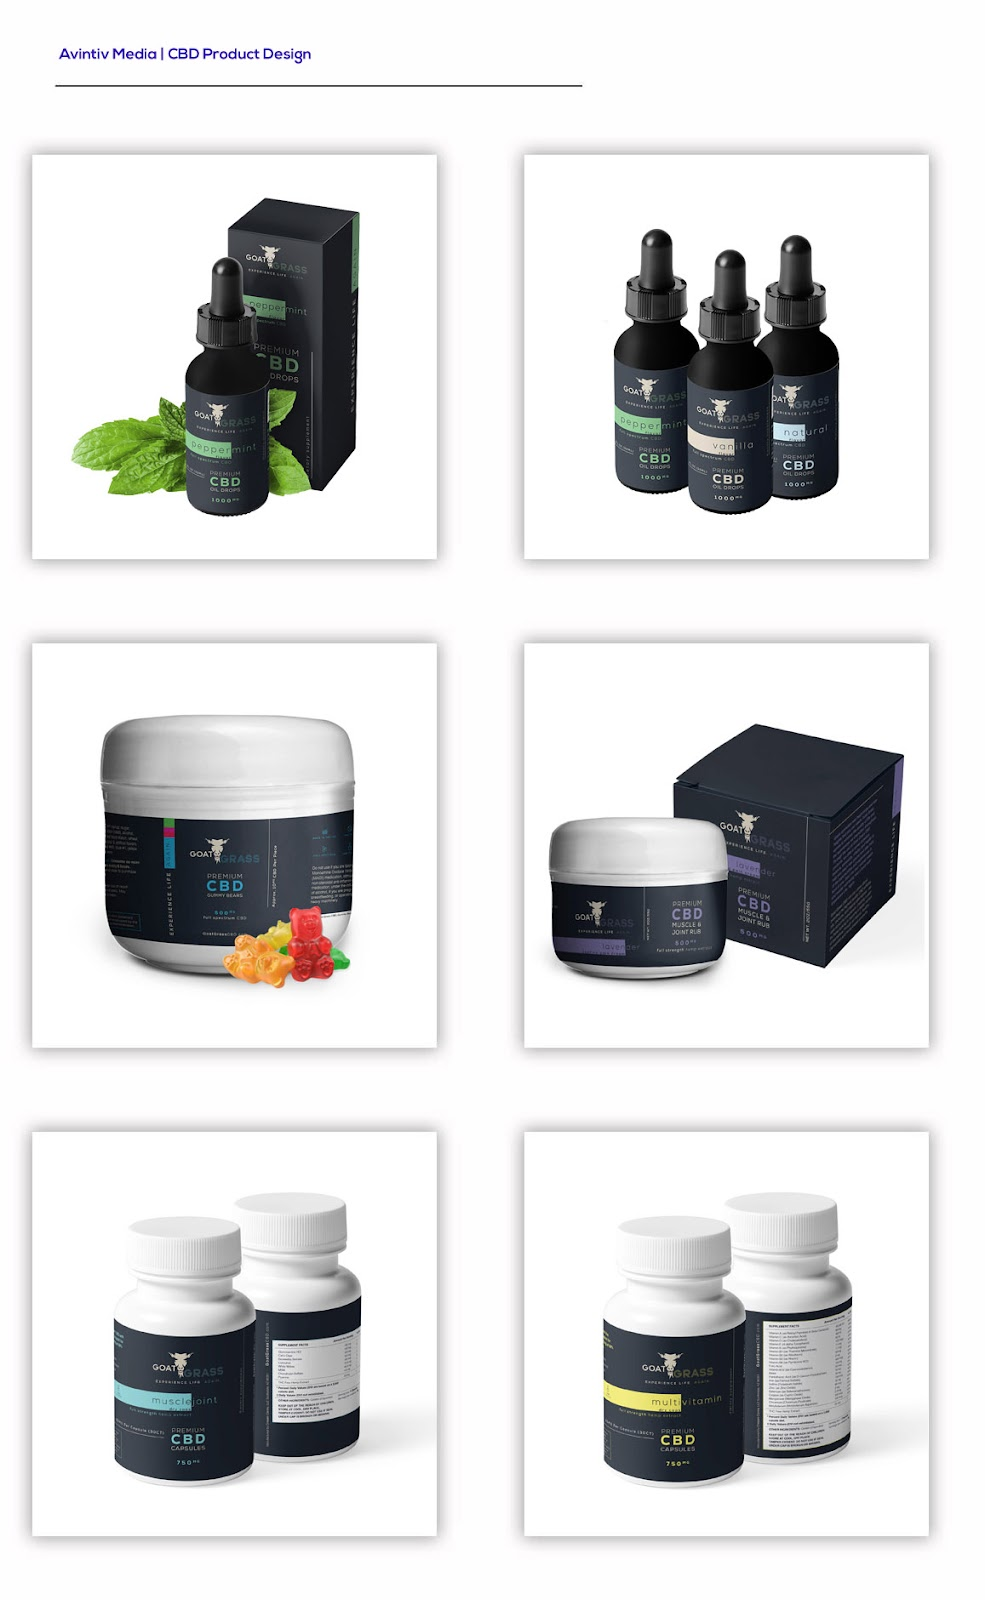 CBD Branding, CBD Marketing, Goat Grass CBD, Product Design, Packaging, Branding, Avintiv Media